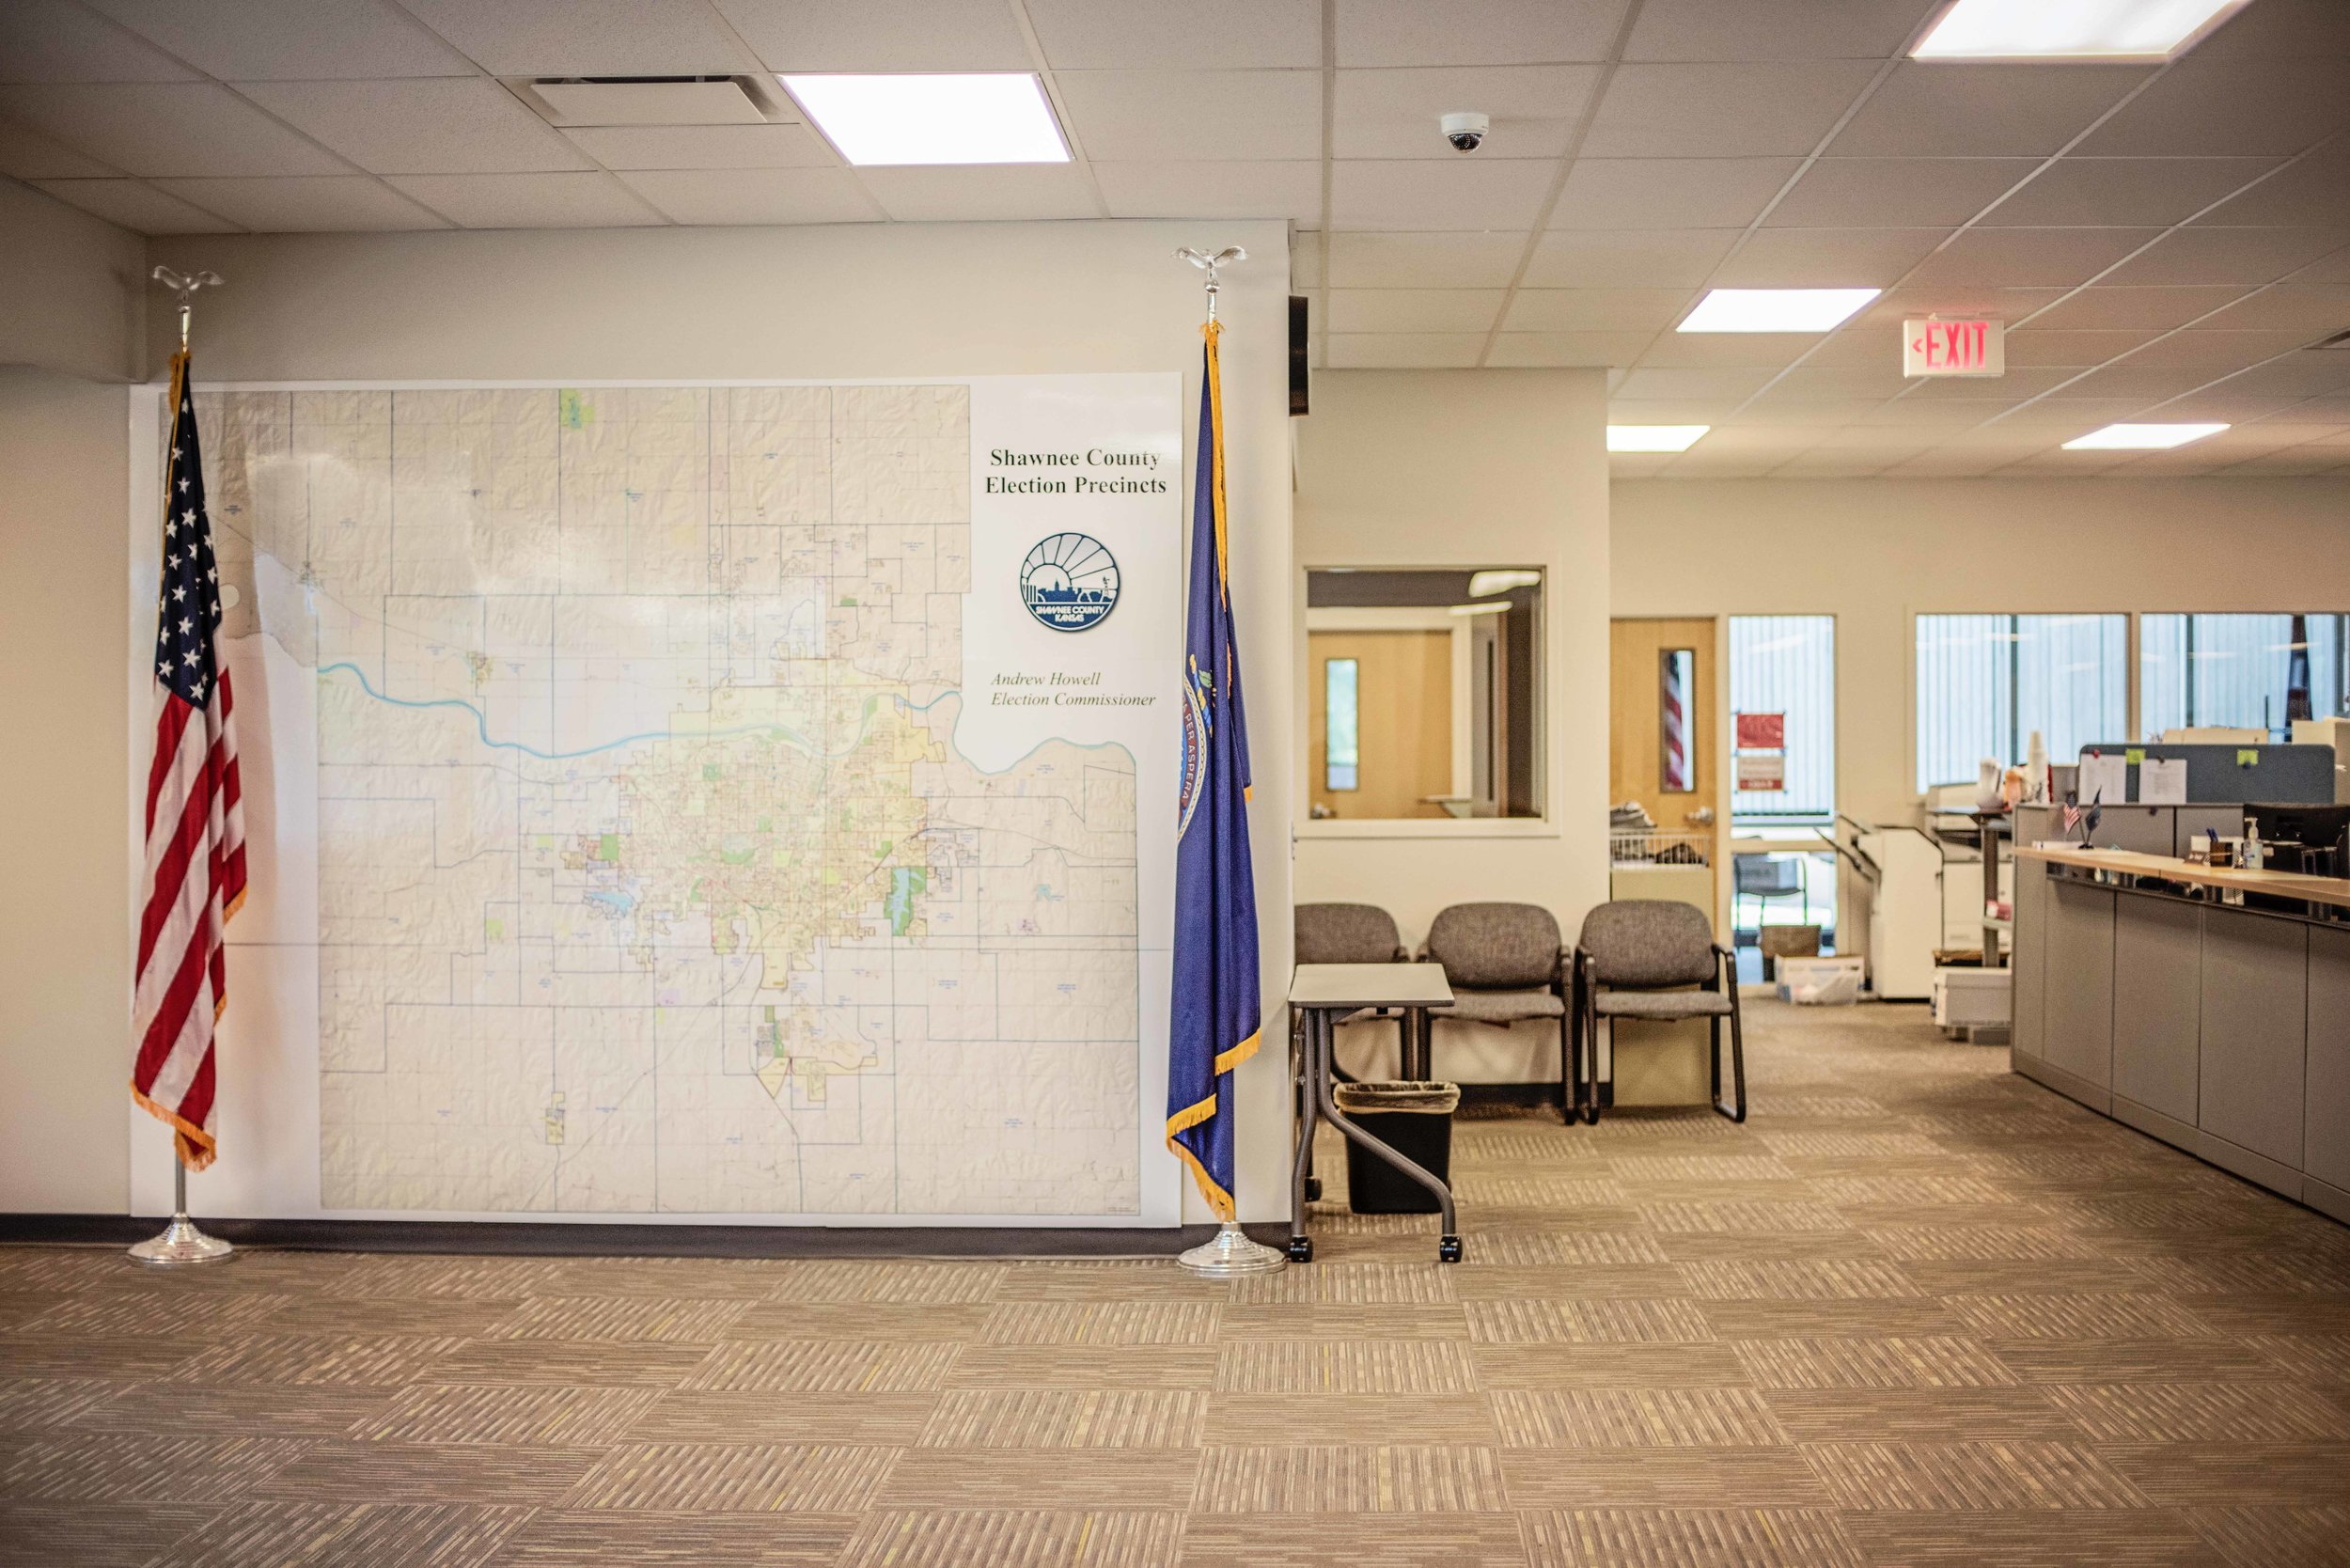 Shawnee County Elections Office - Client: Shawnee CountyArchitect: Shirley Construction/HTK Architects Design Build